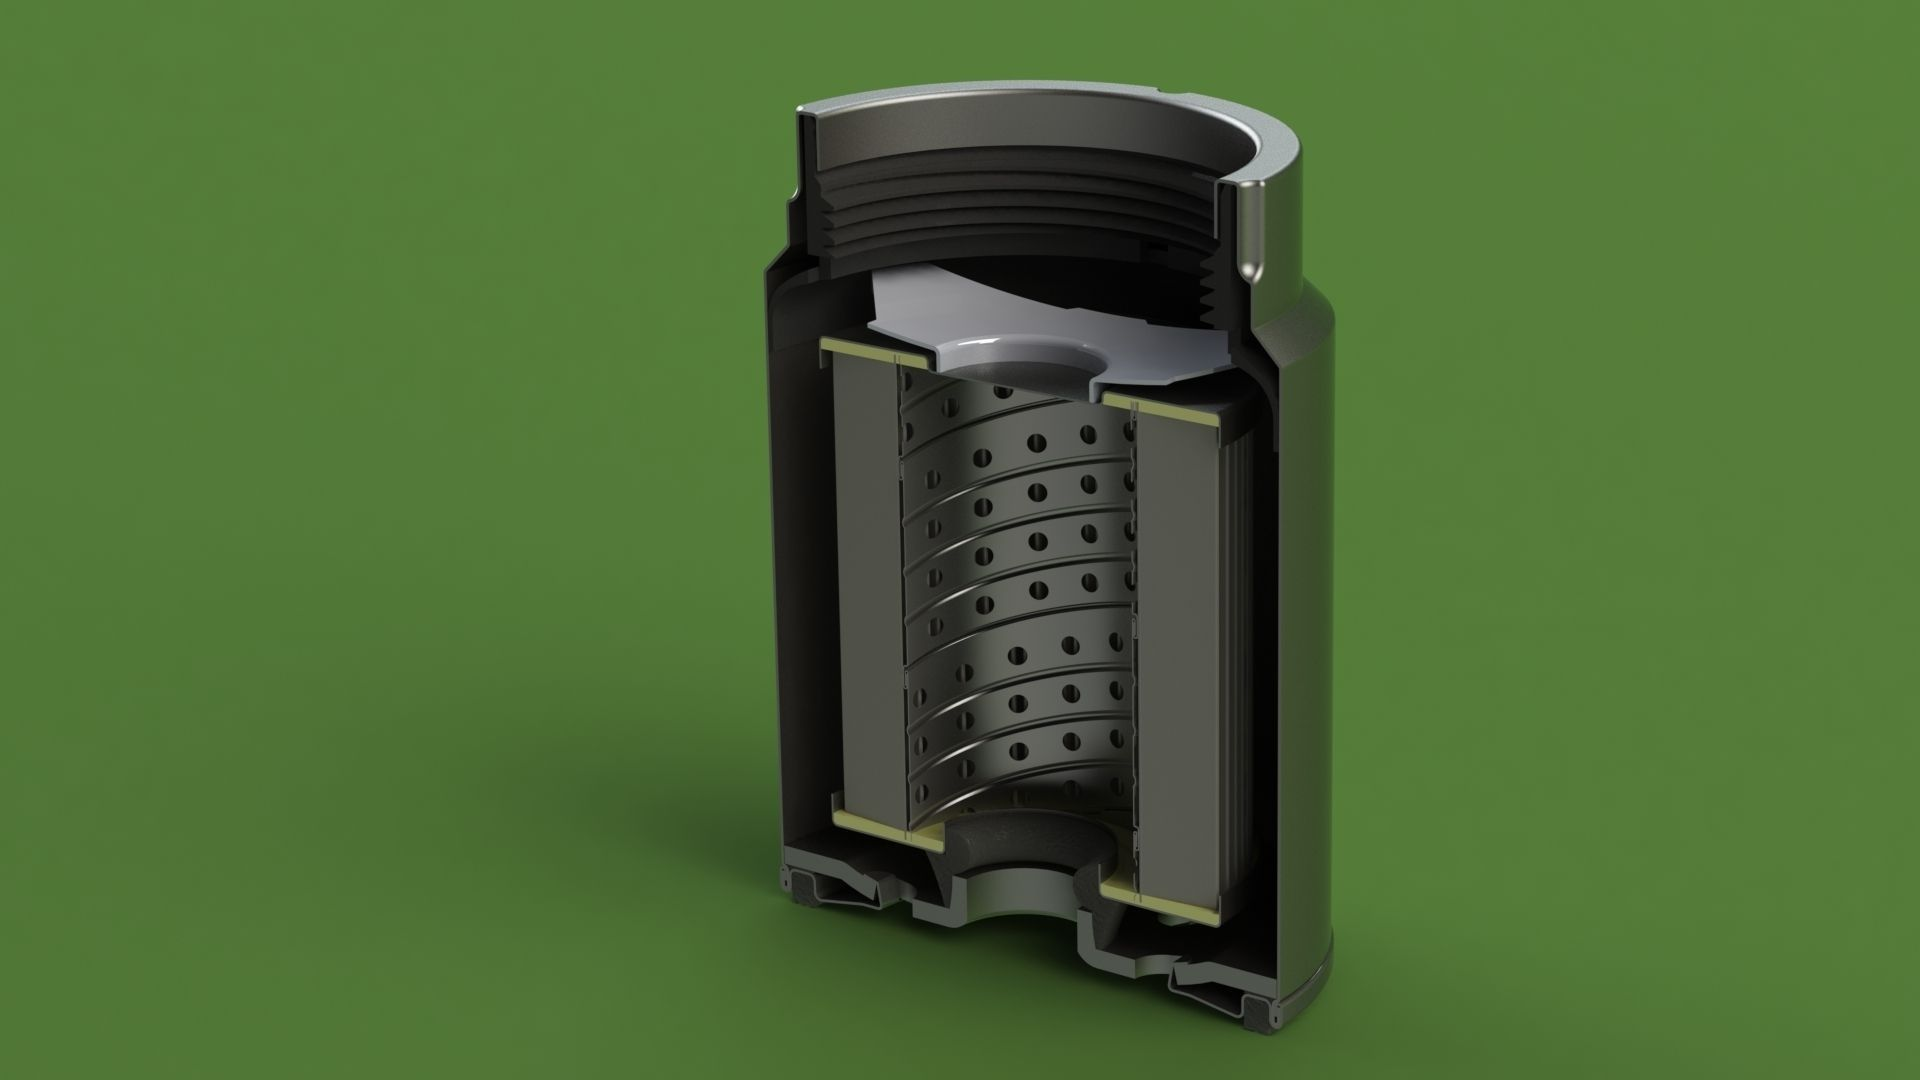 hight resolution of mann pl270 disel fuel filter 3d model sldprt sldasm slddrw 1